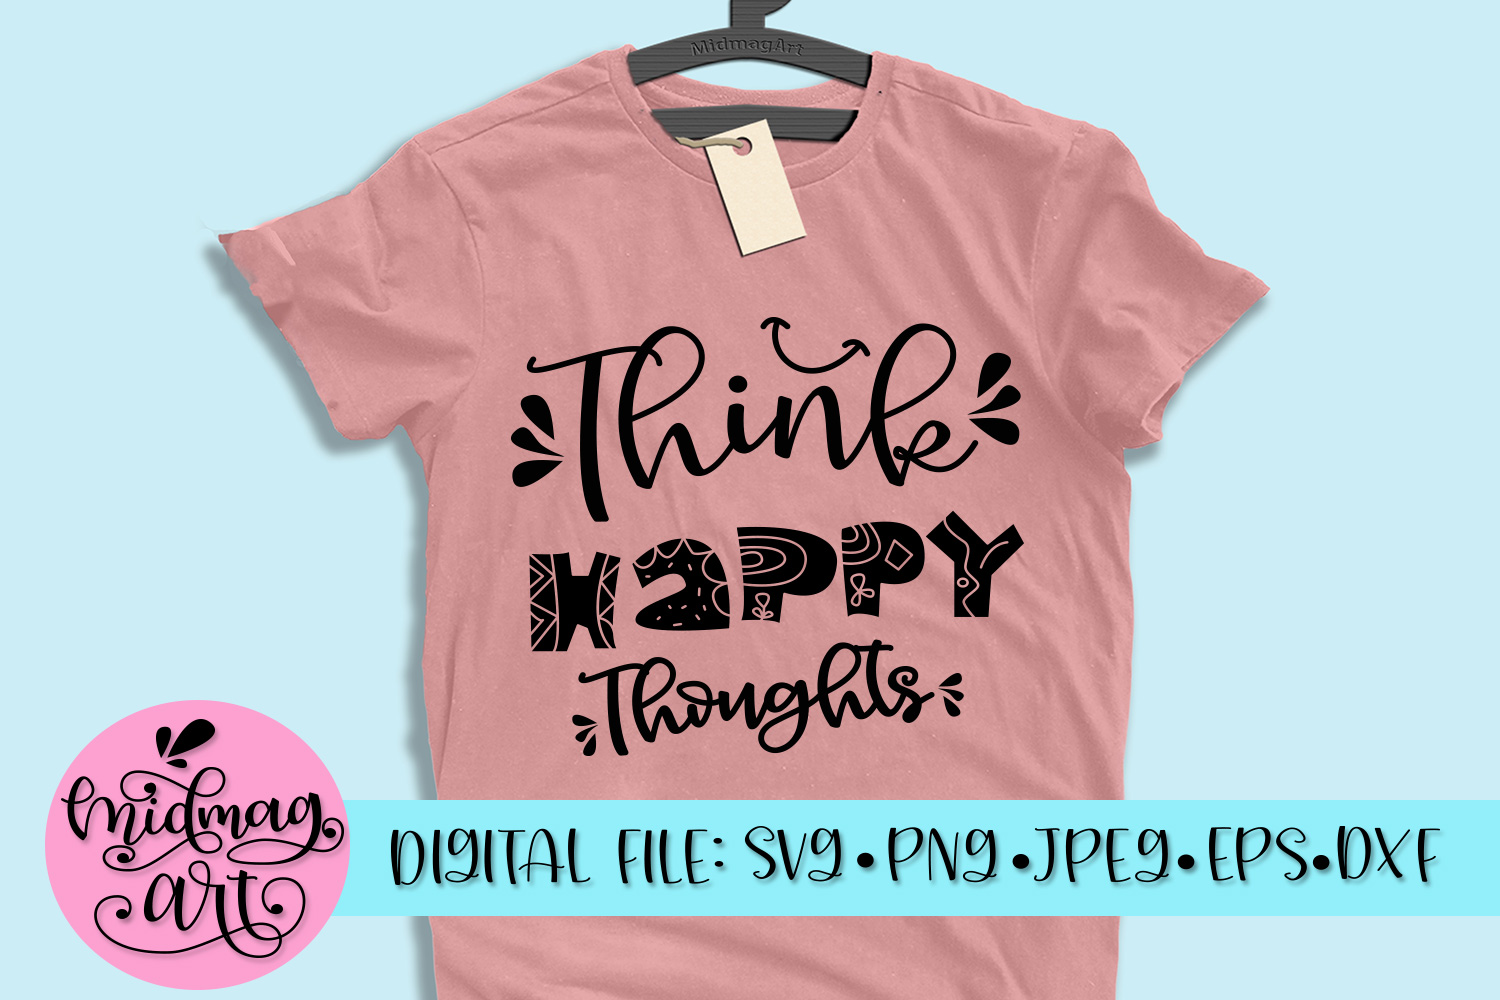 Think happy thoughts svg, png, jpeg, eps and dxf example image 1